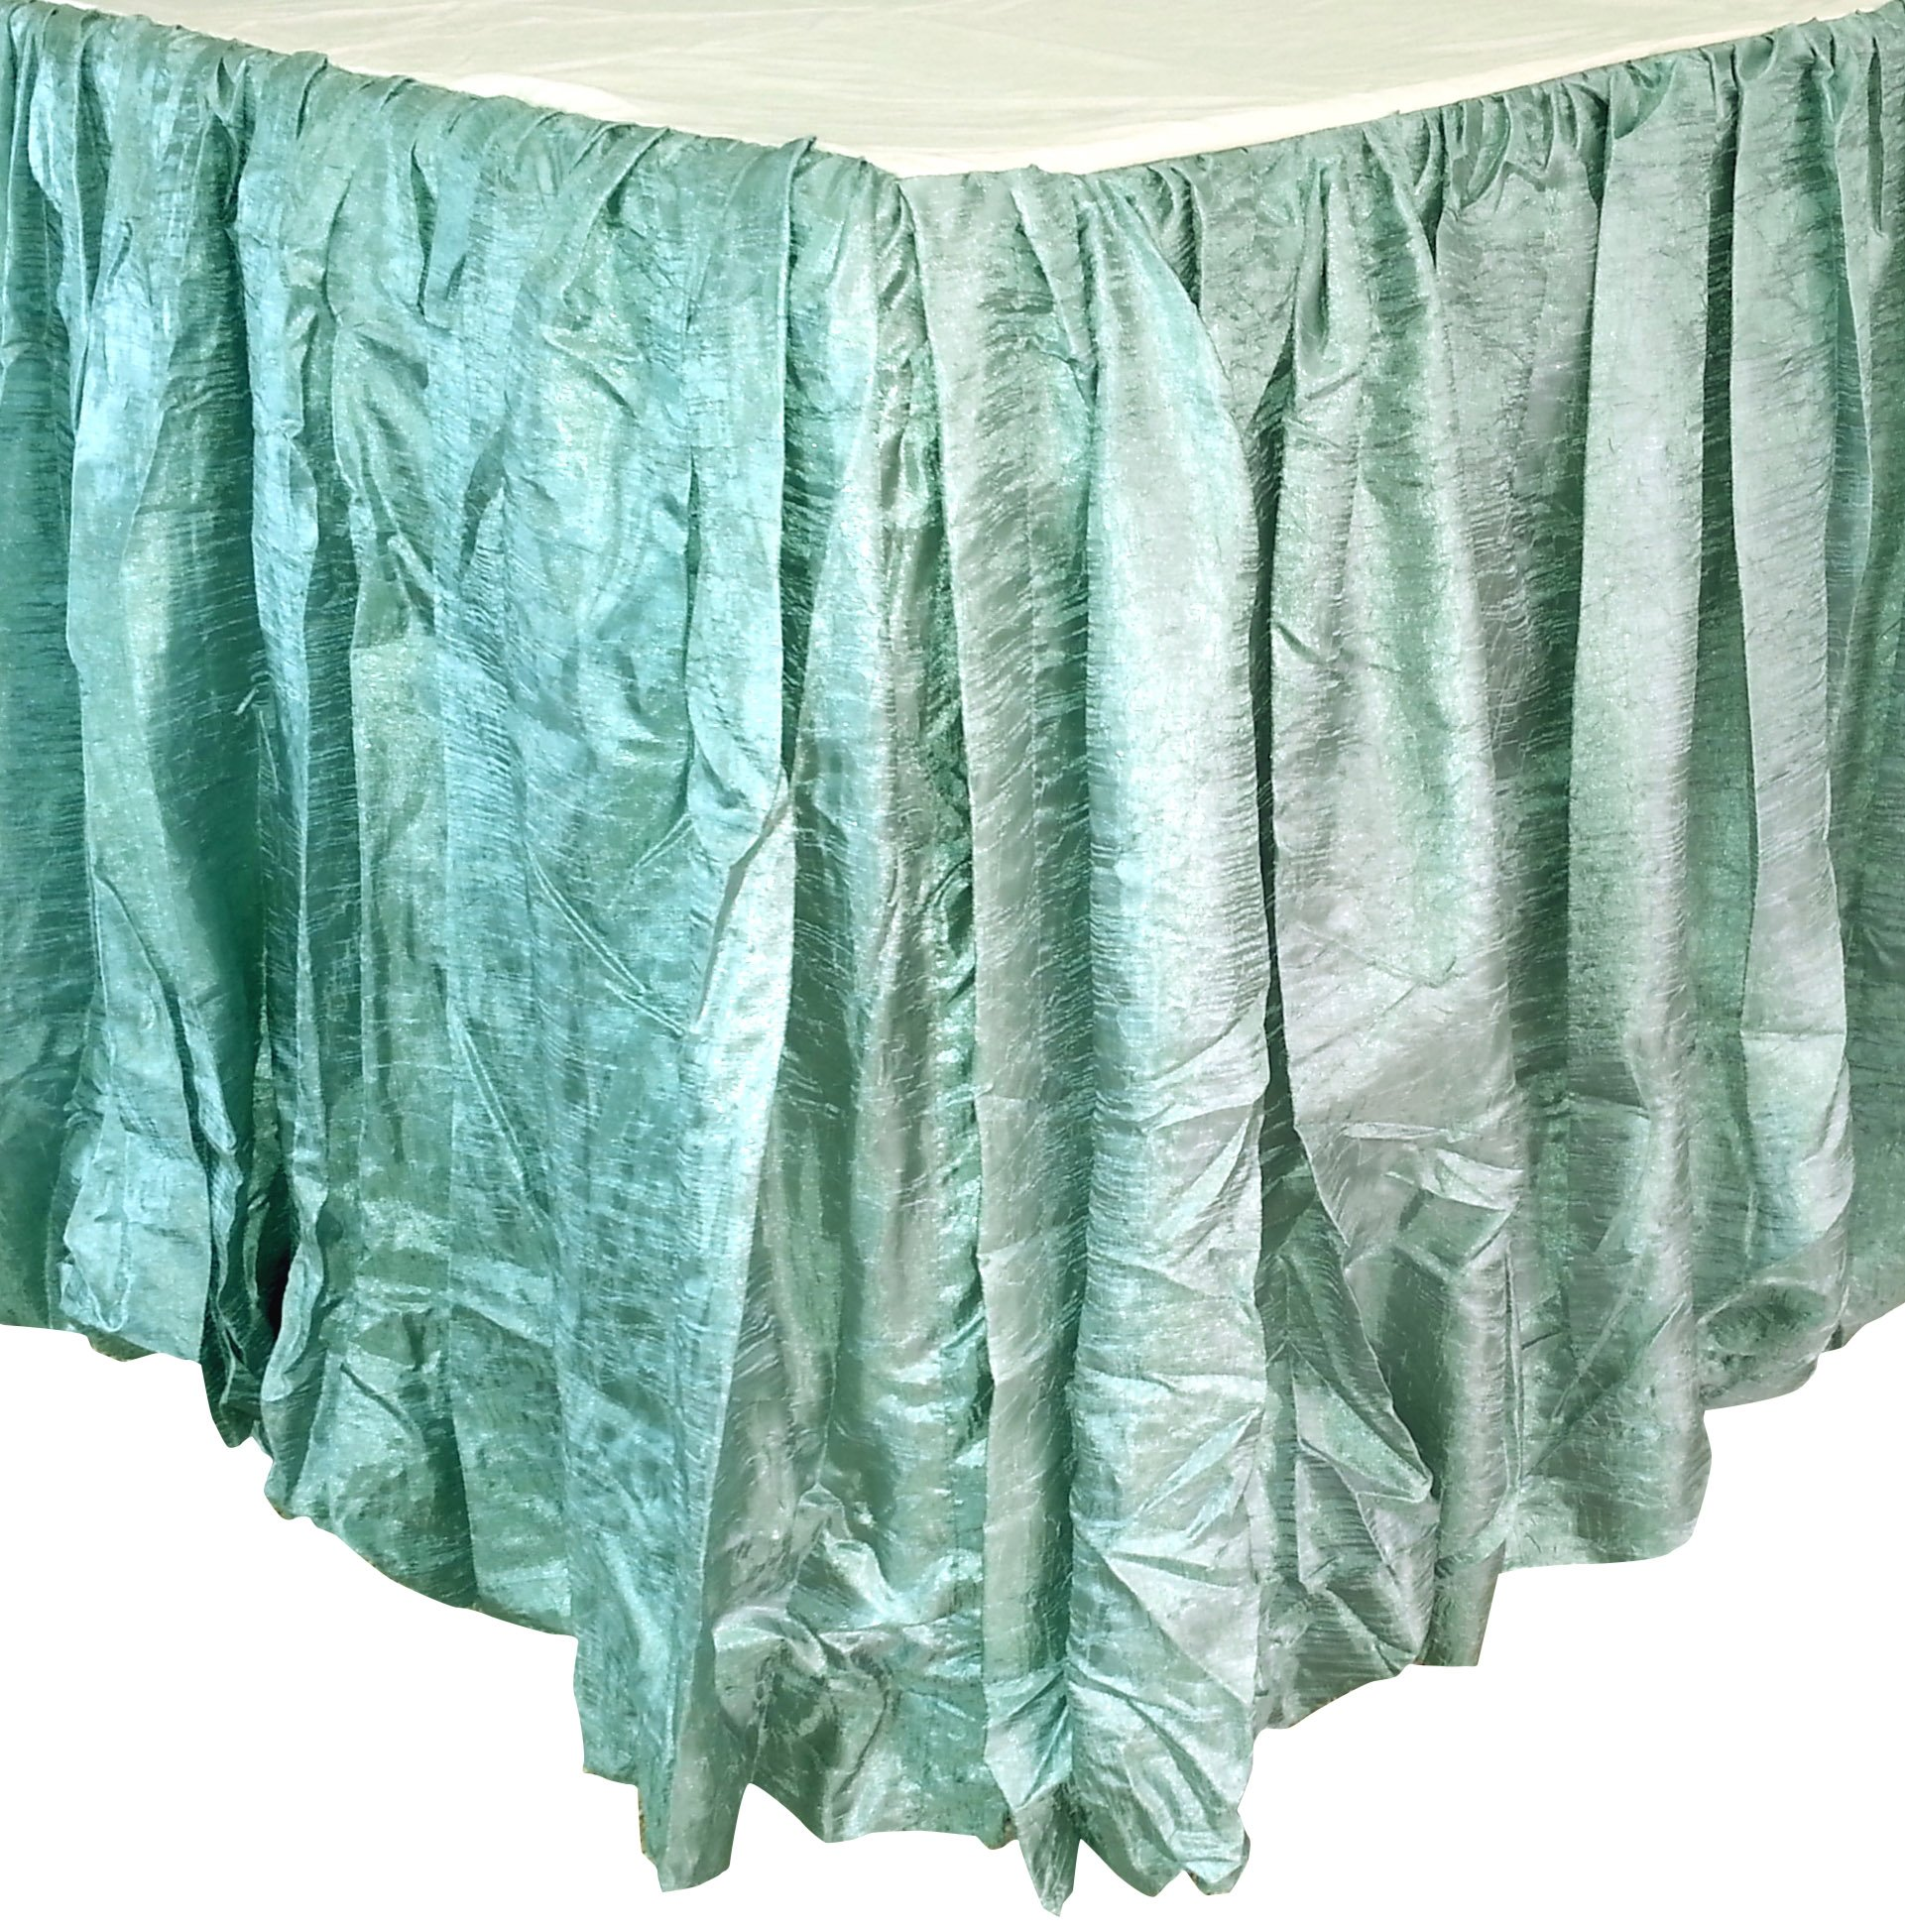 Edie 0725K21 Silkanza Balloon Decorative Bed Skirt, Seafoam, 78 x 80 x 21'' Drop